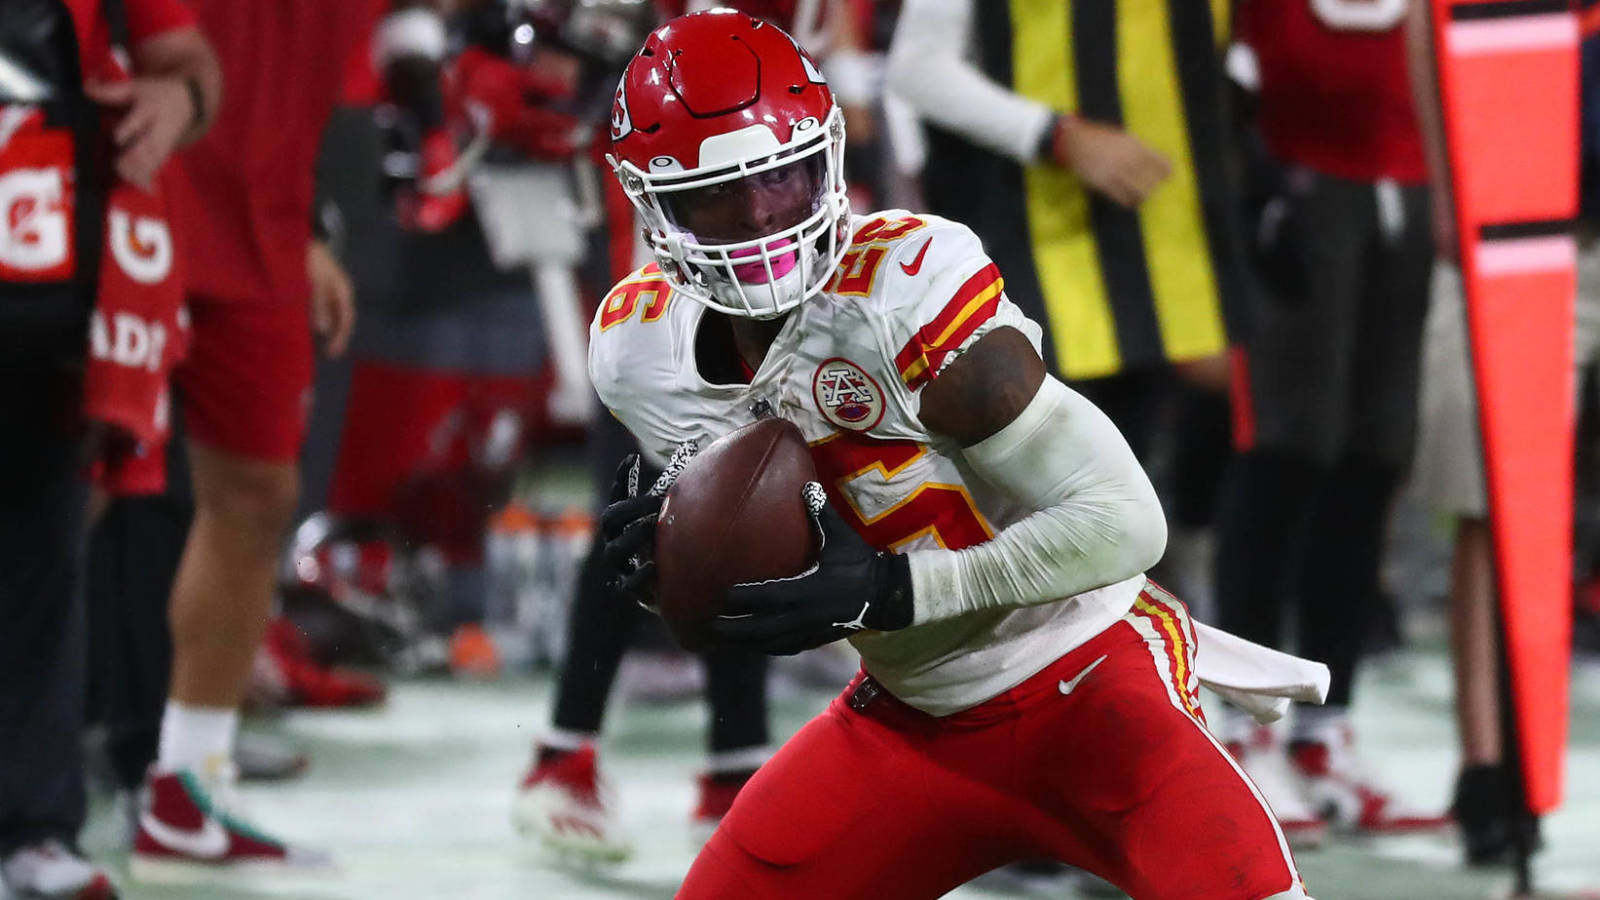 Chiefs RB Le'Veon Bell willing to box Jake Paul?